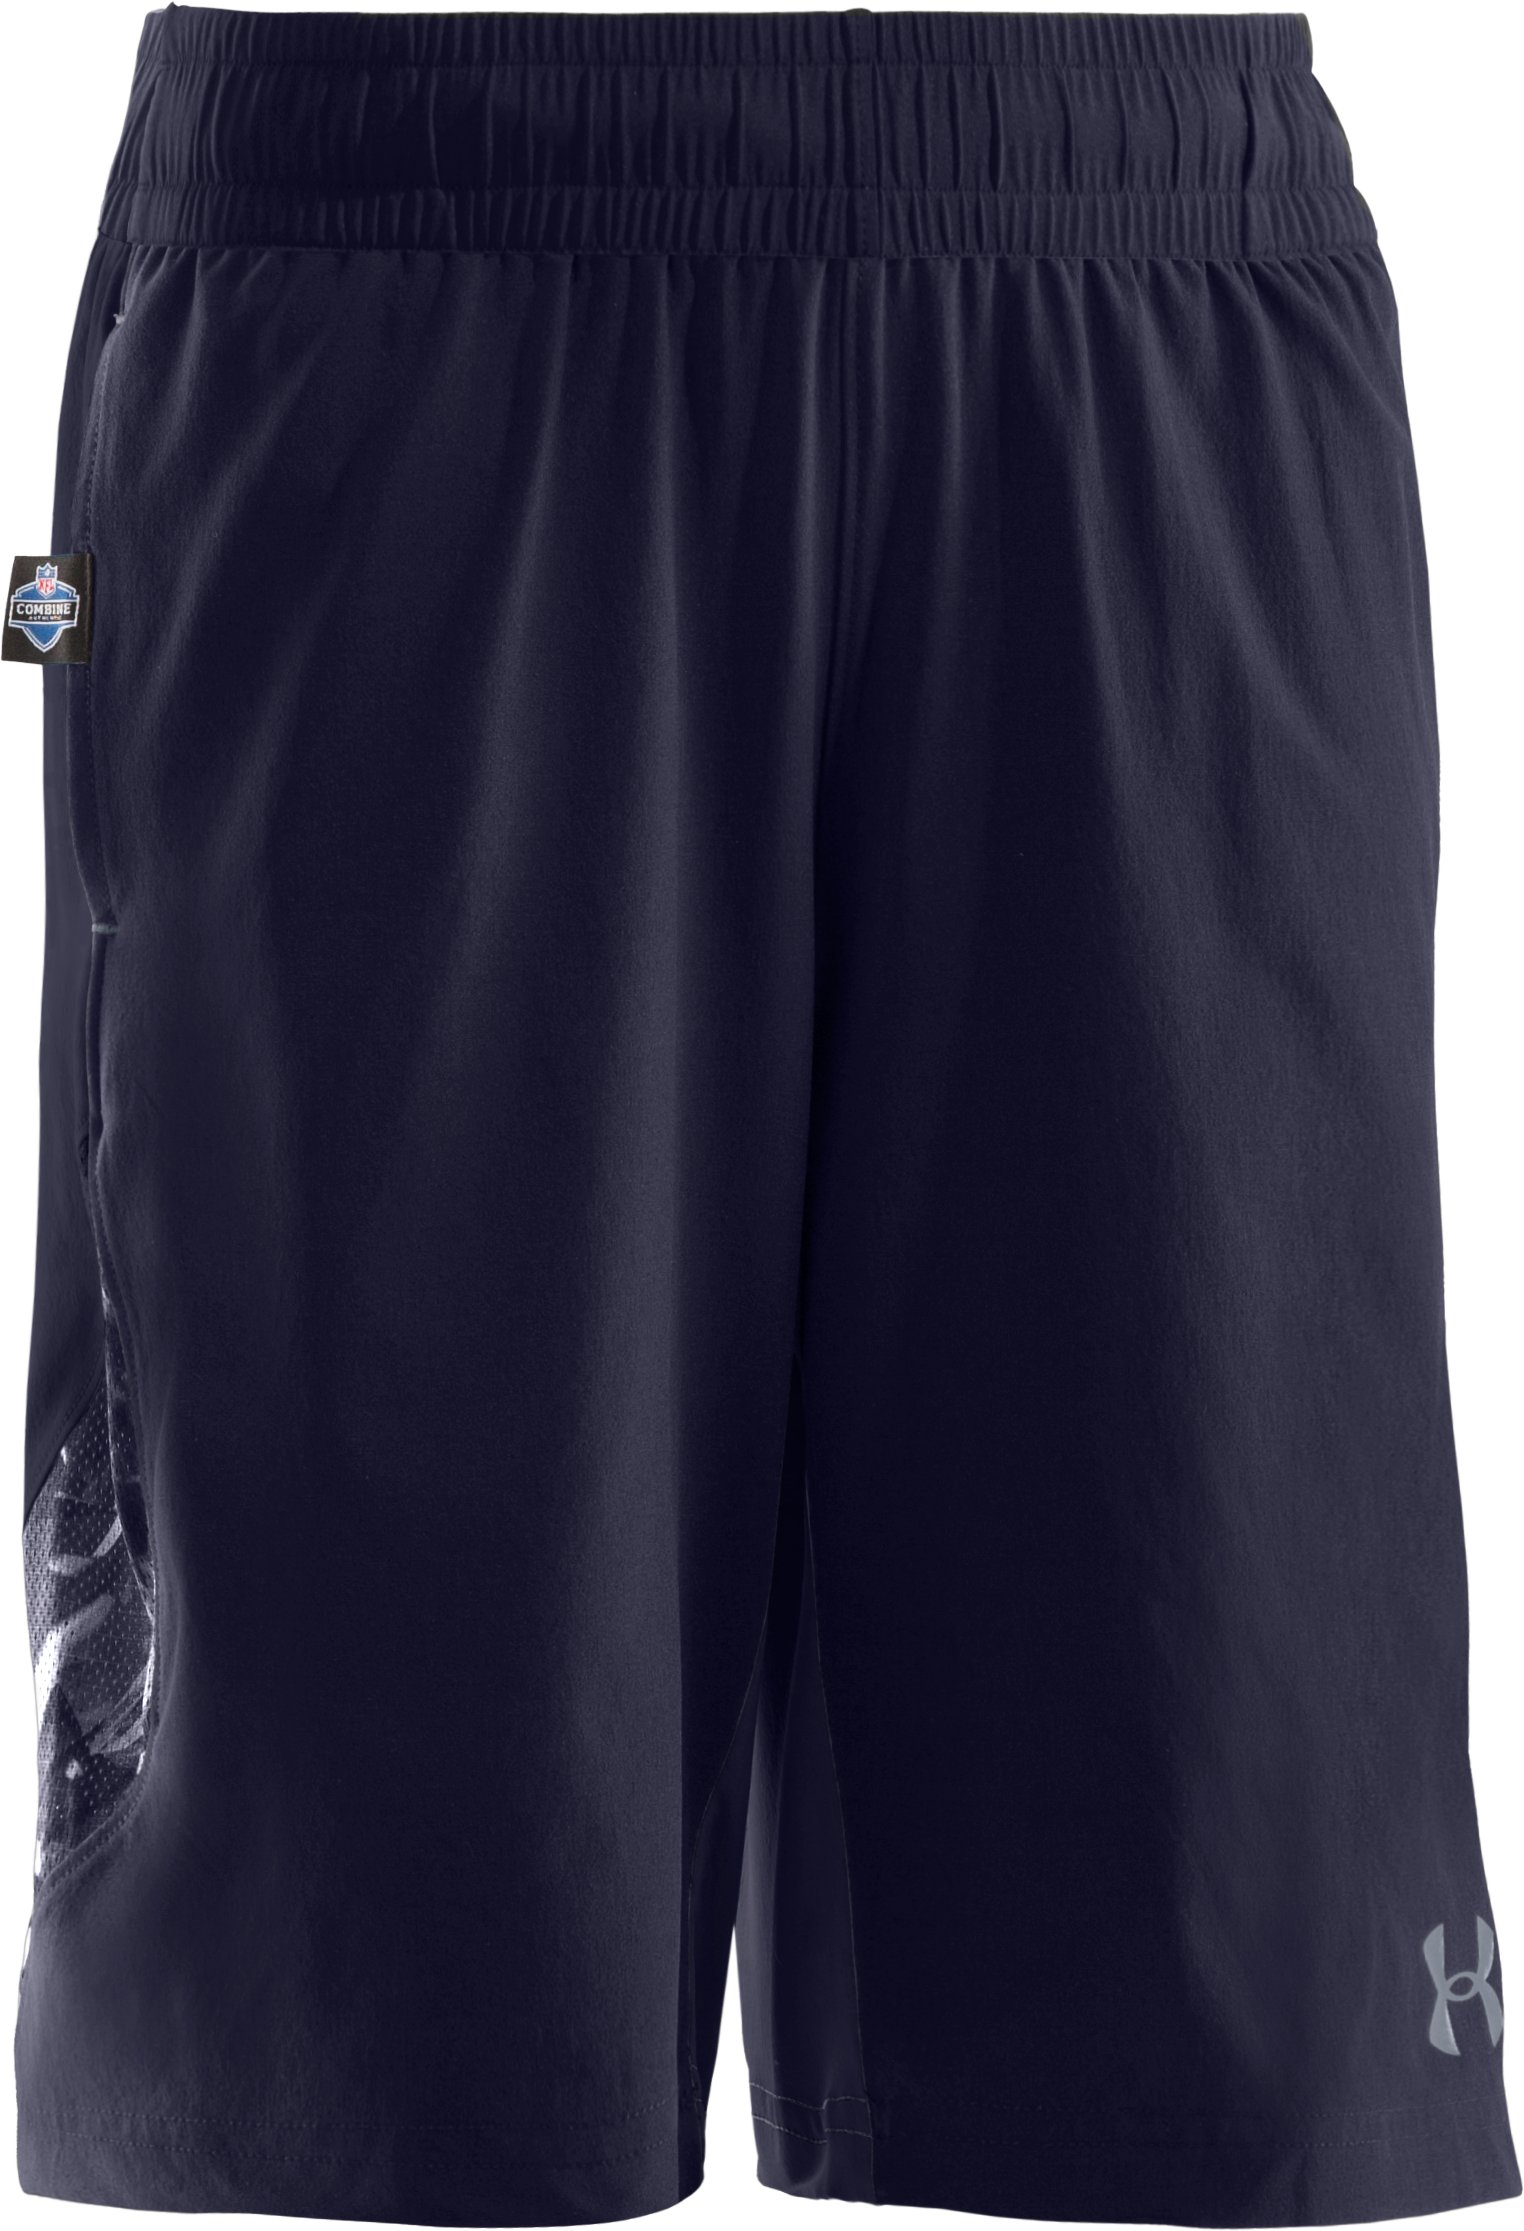 Boys' NFL Combine Authentic Shorts, Midnight Navy